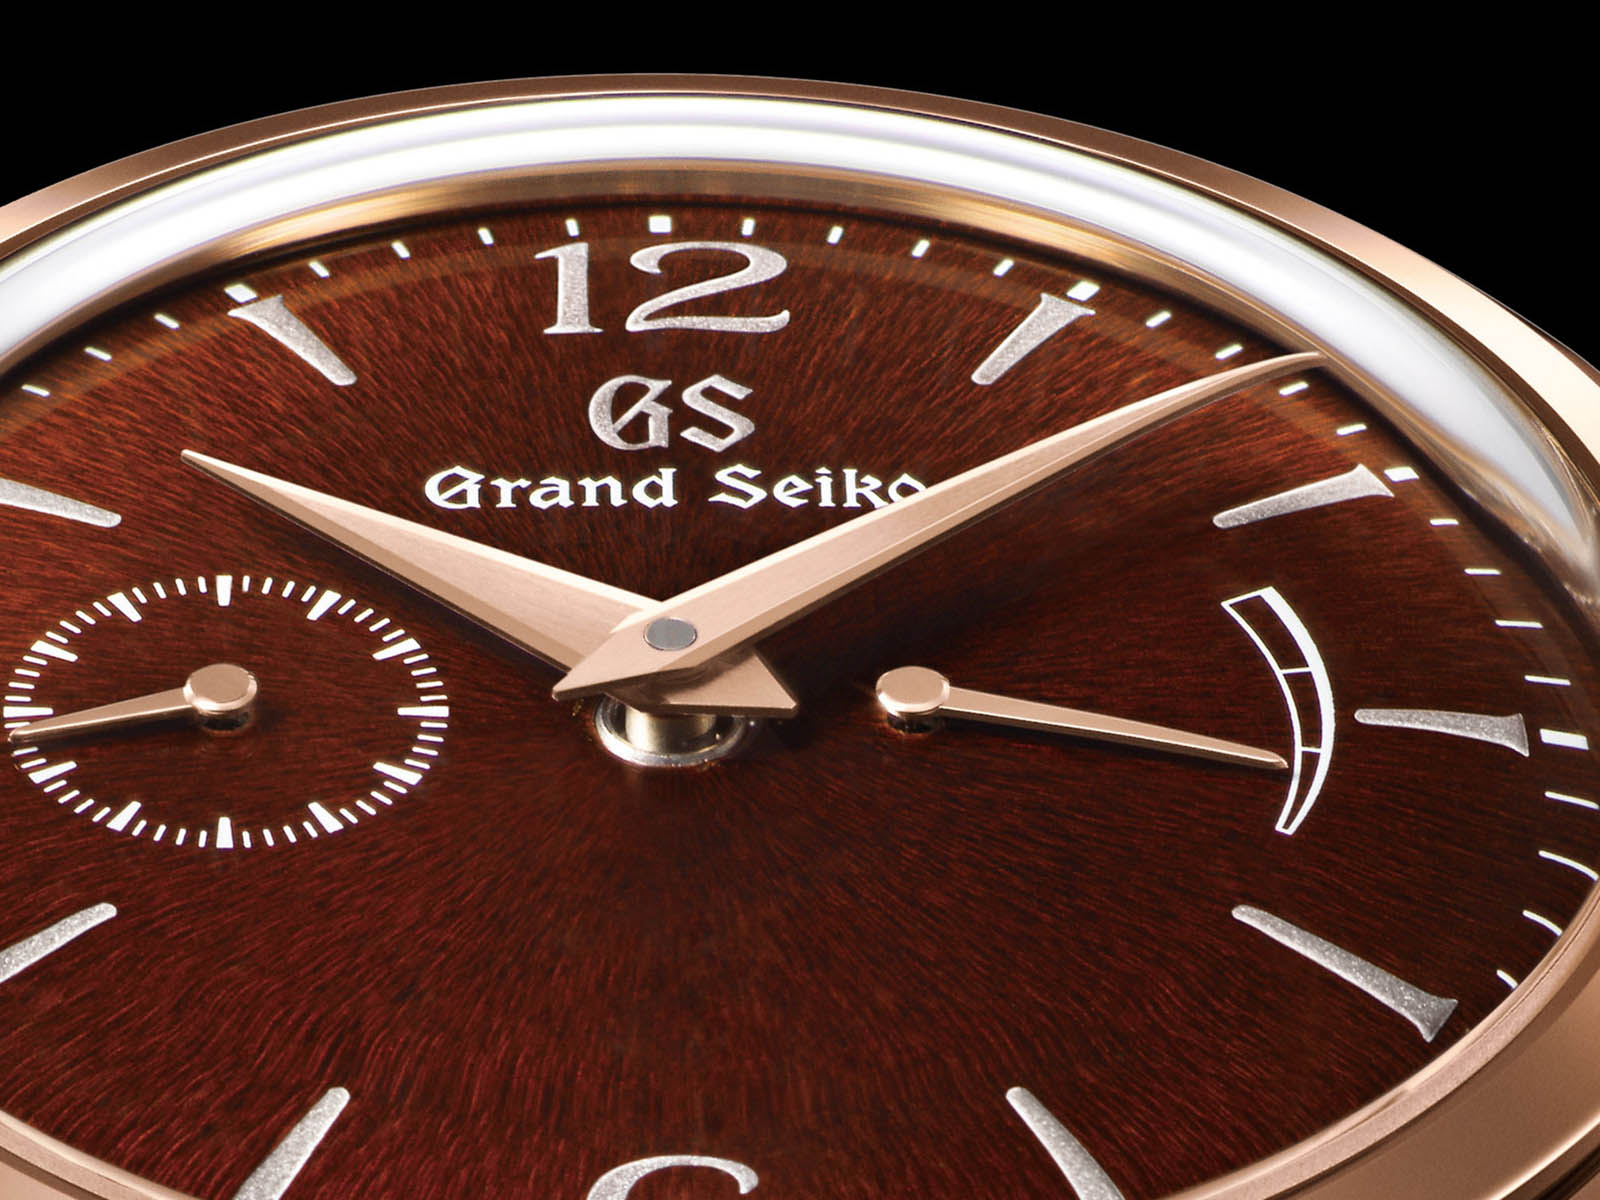 sbgk002-grand-seiko-elegance-collection-3.jpg